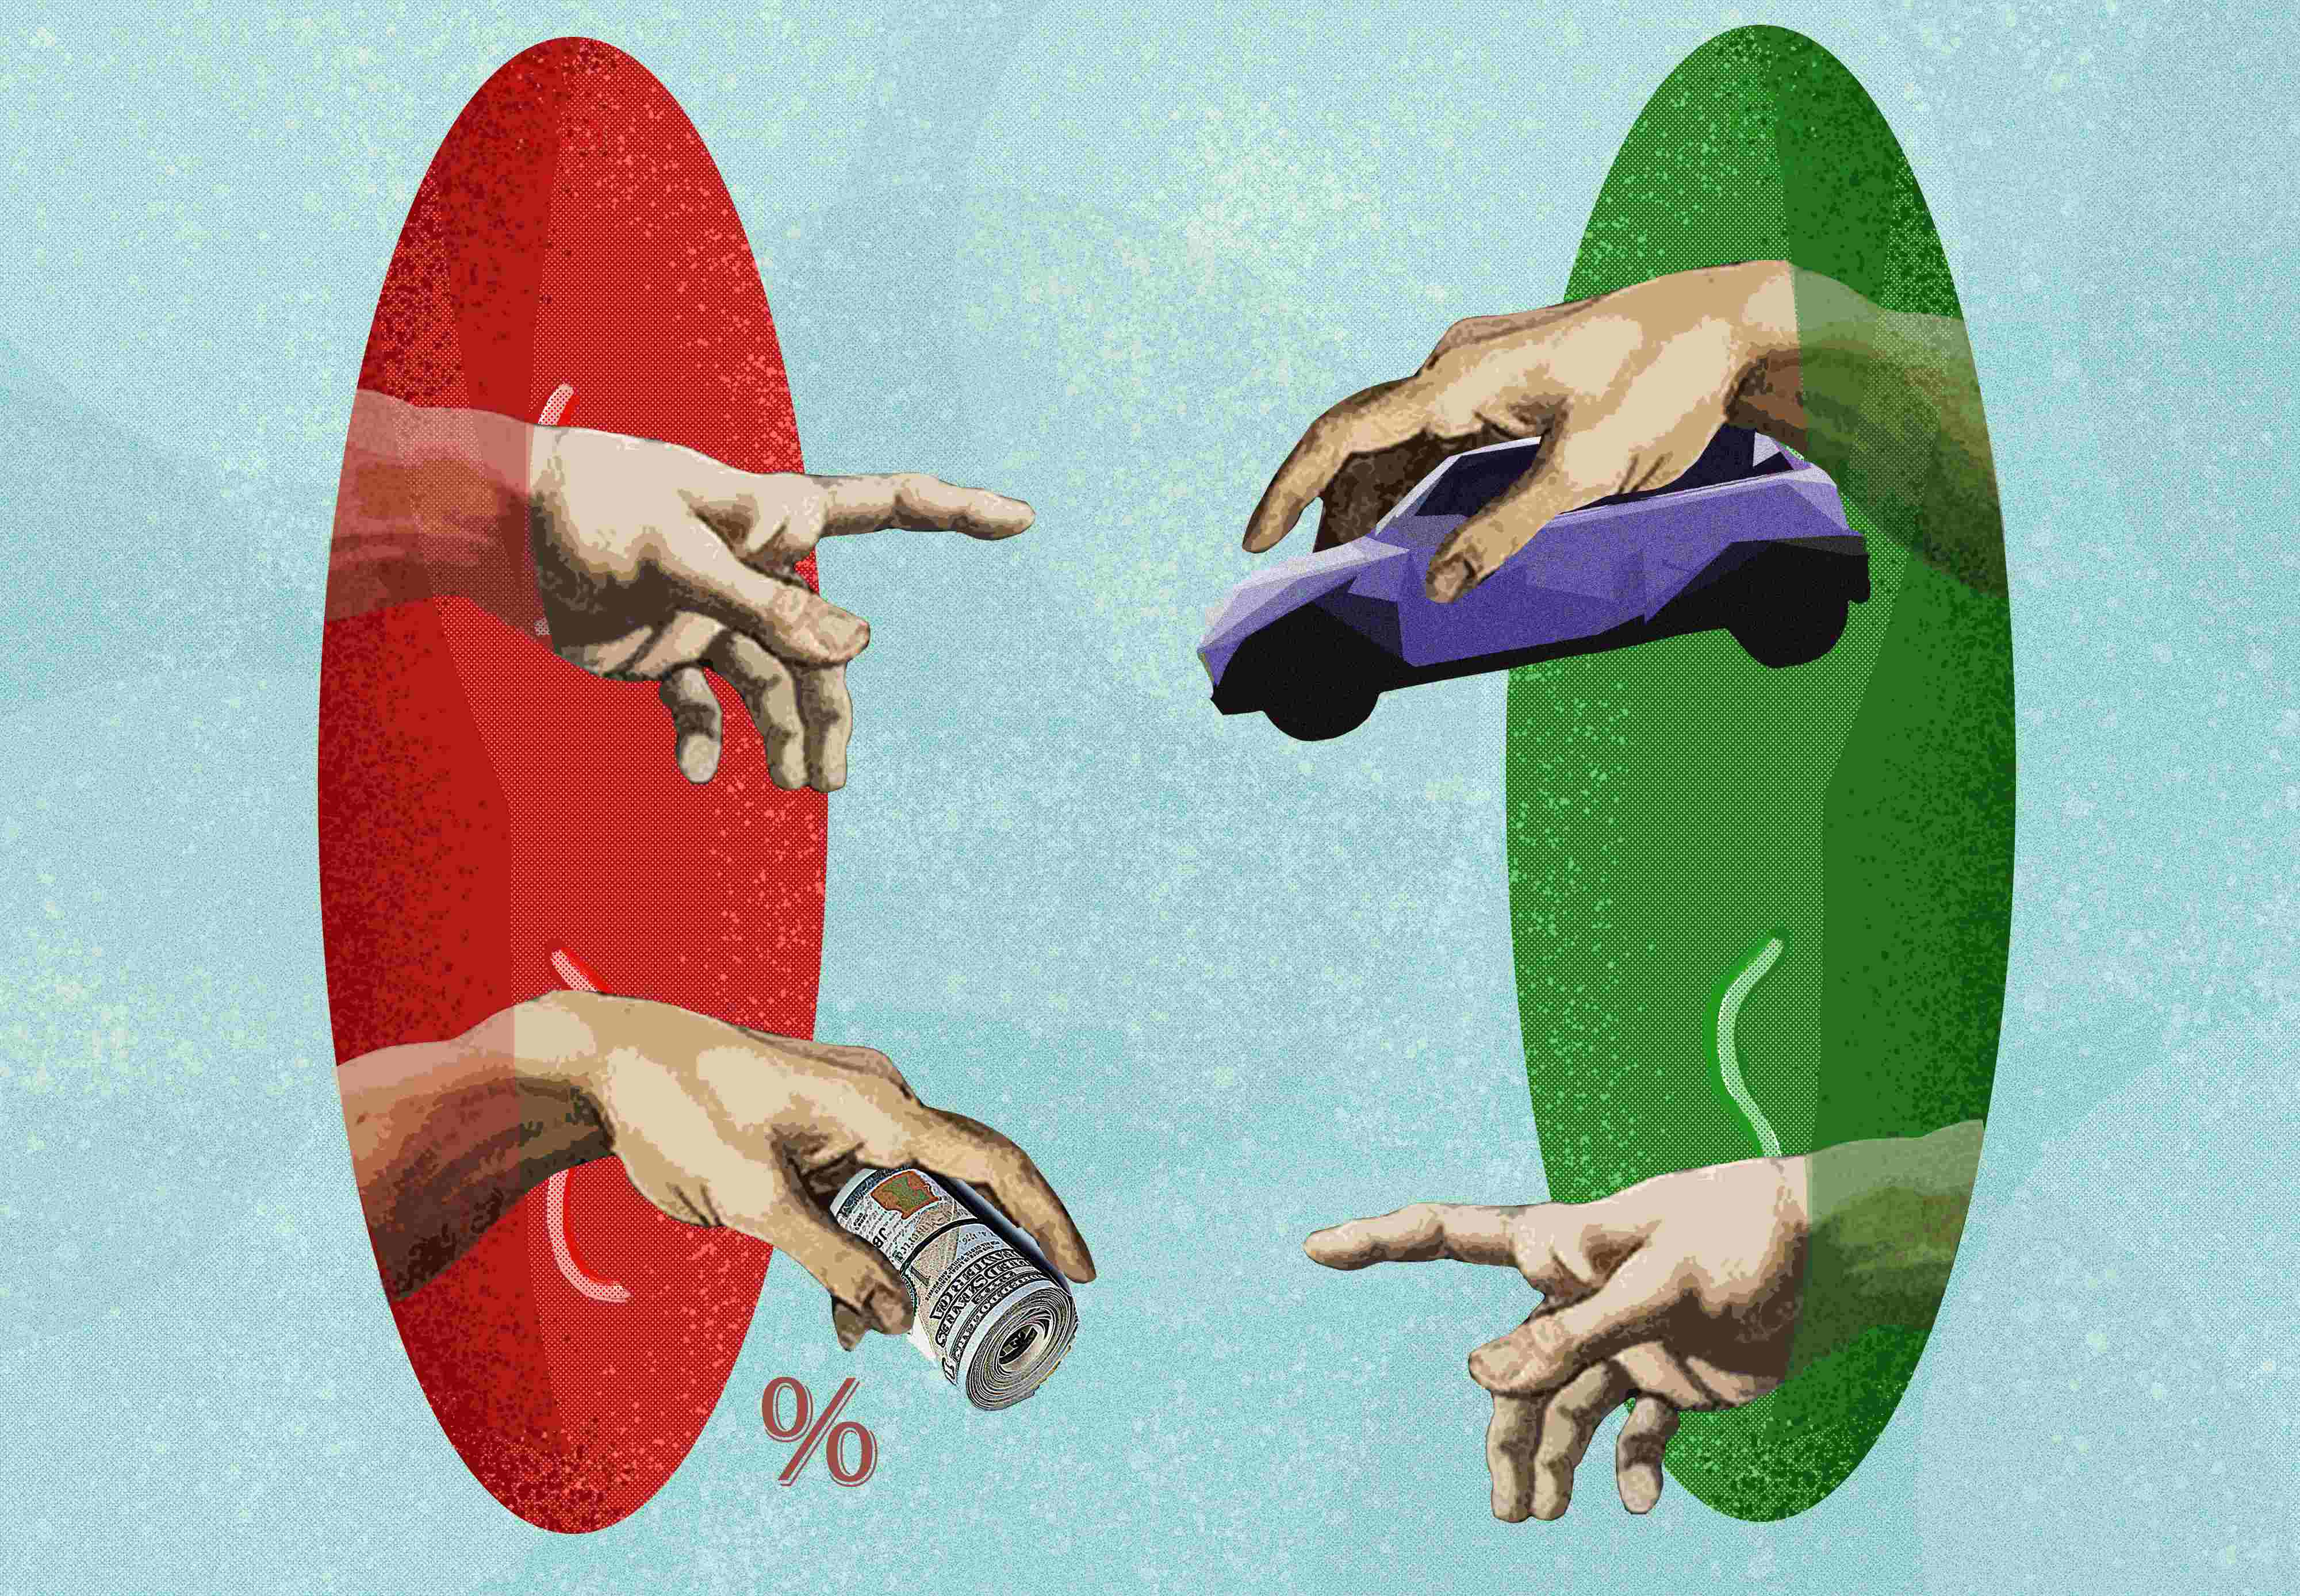 One pair of hands on the right gives the car and takes the money, other pair of hands on the left gives the money and takes the car.